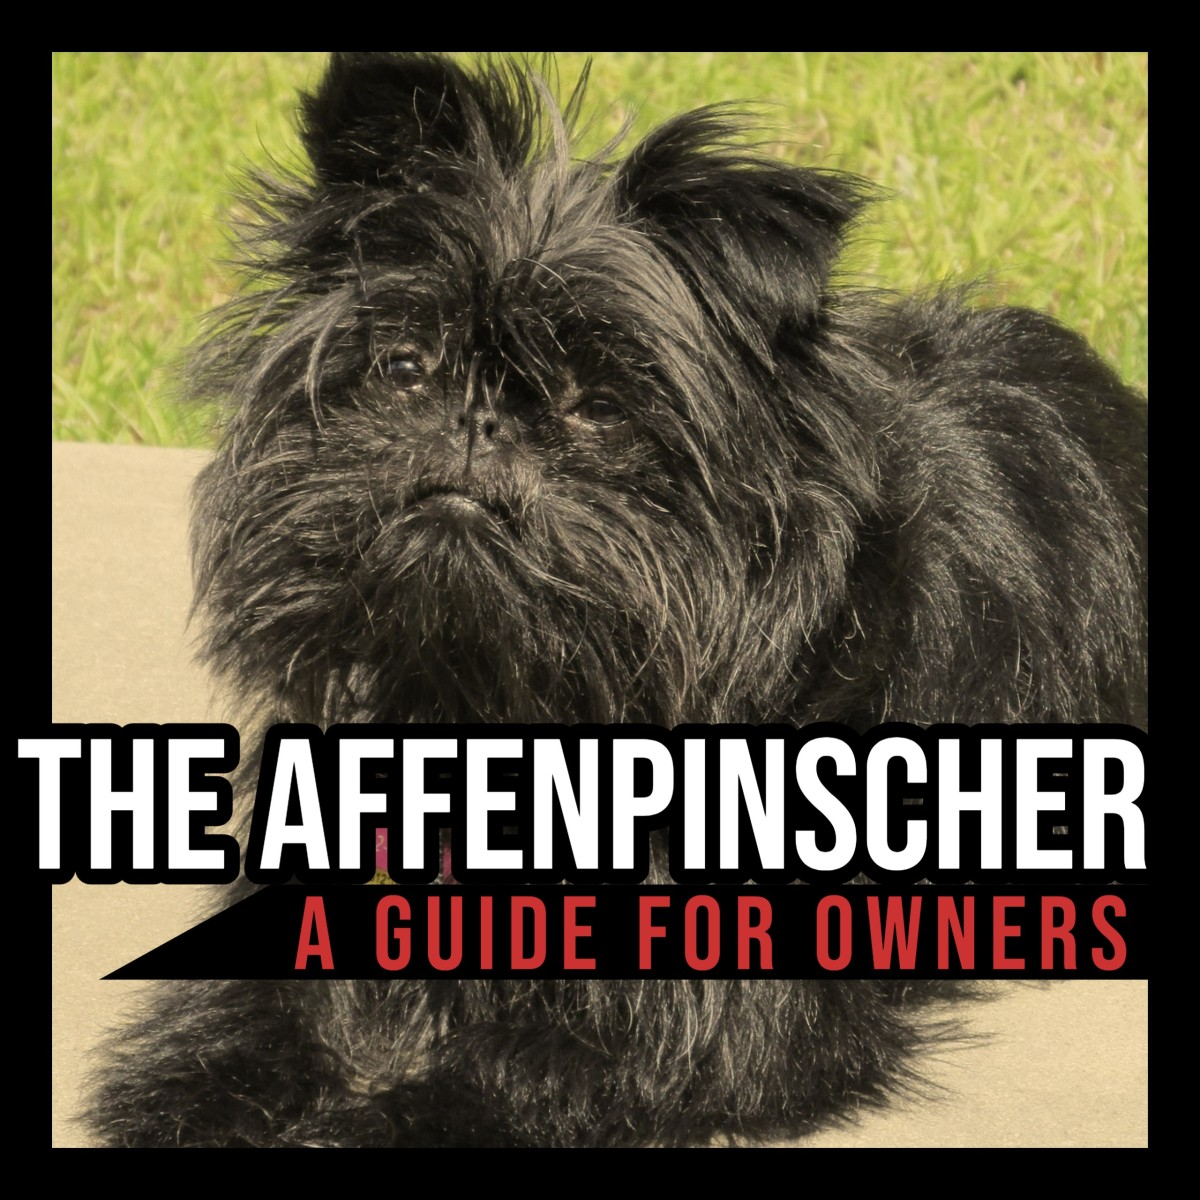 The Affenpinscher: A Guide for Owners